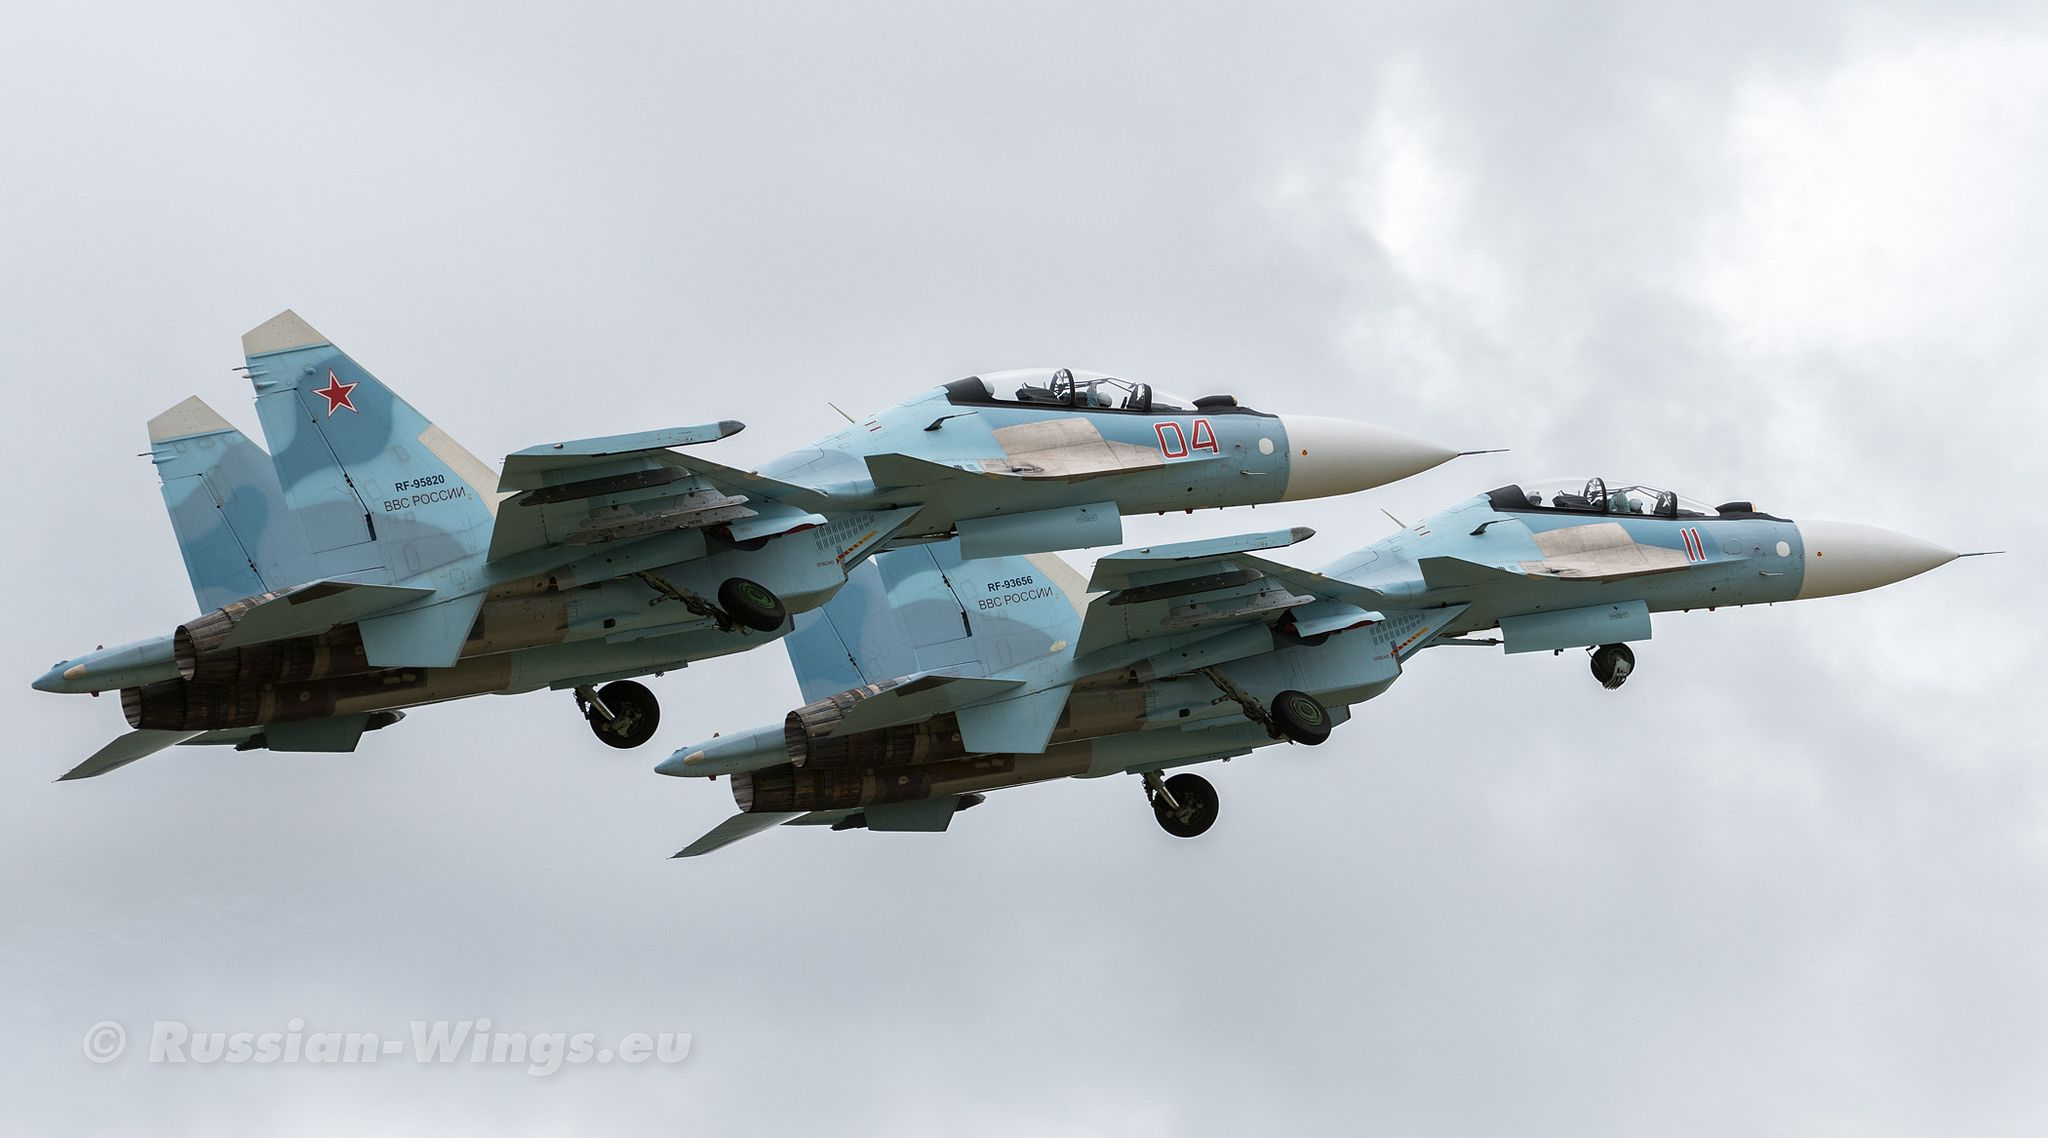 military picture sukhoi su - photo #39